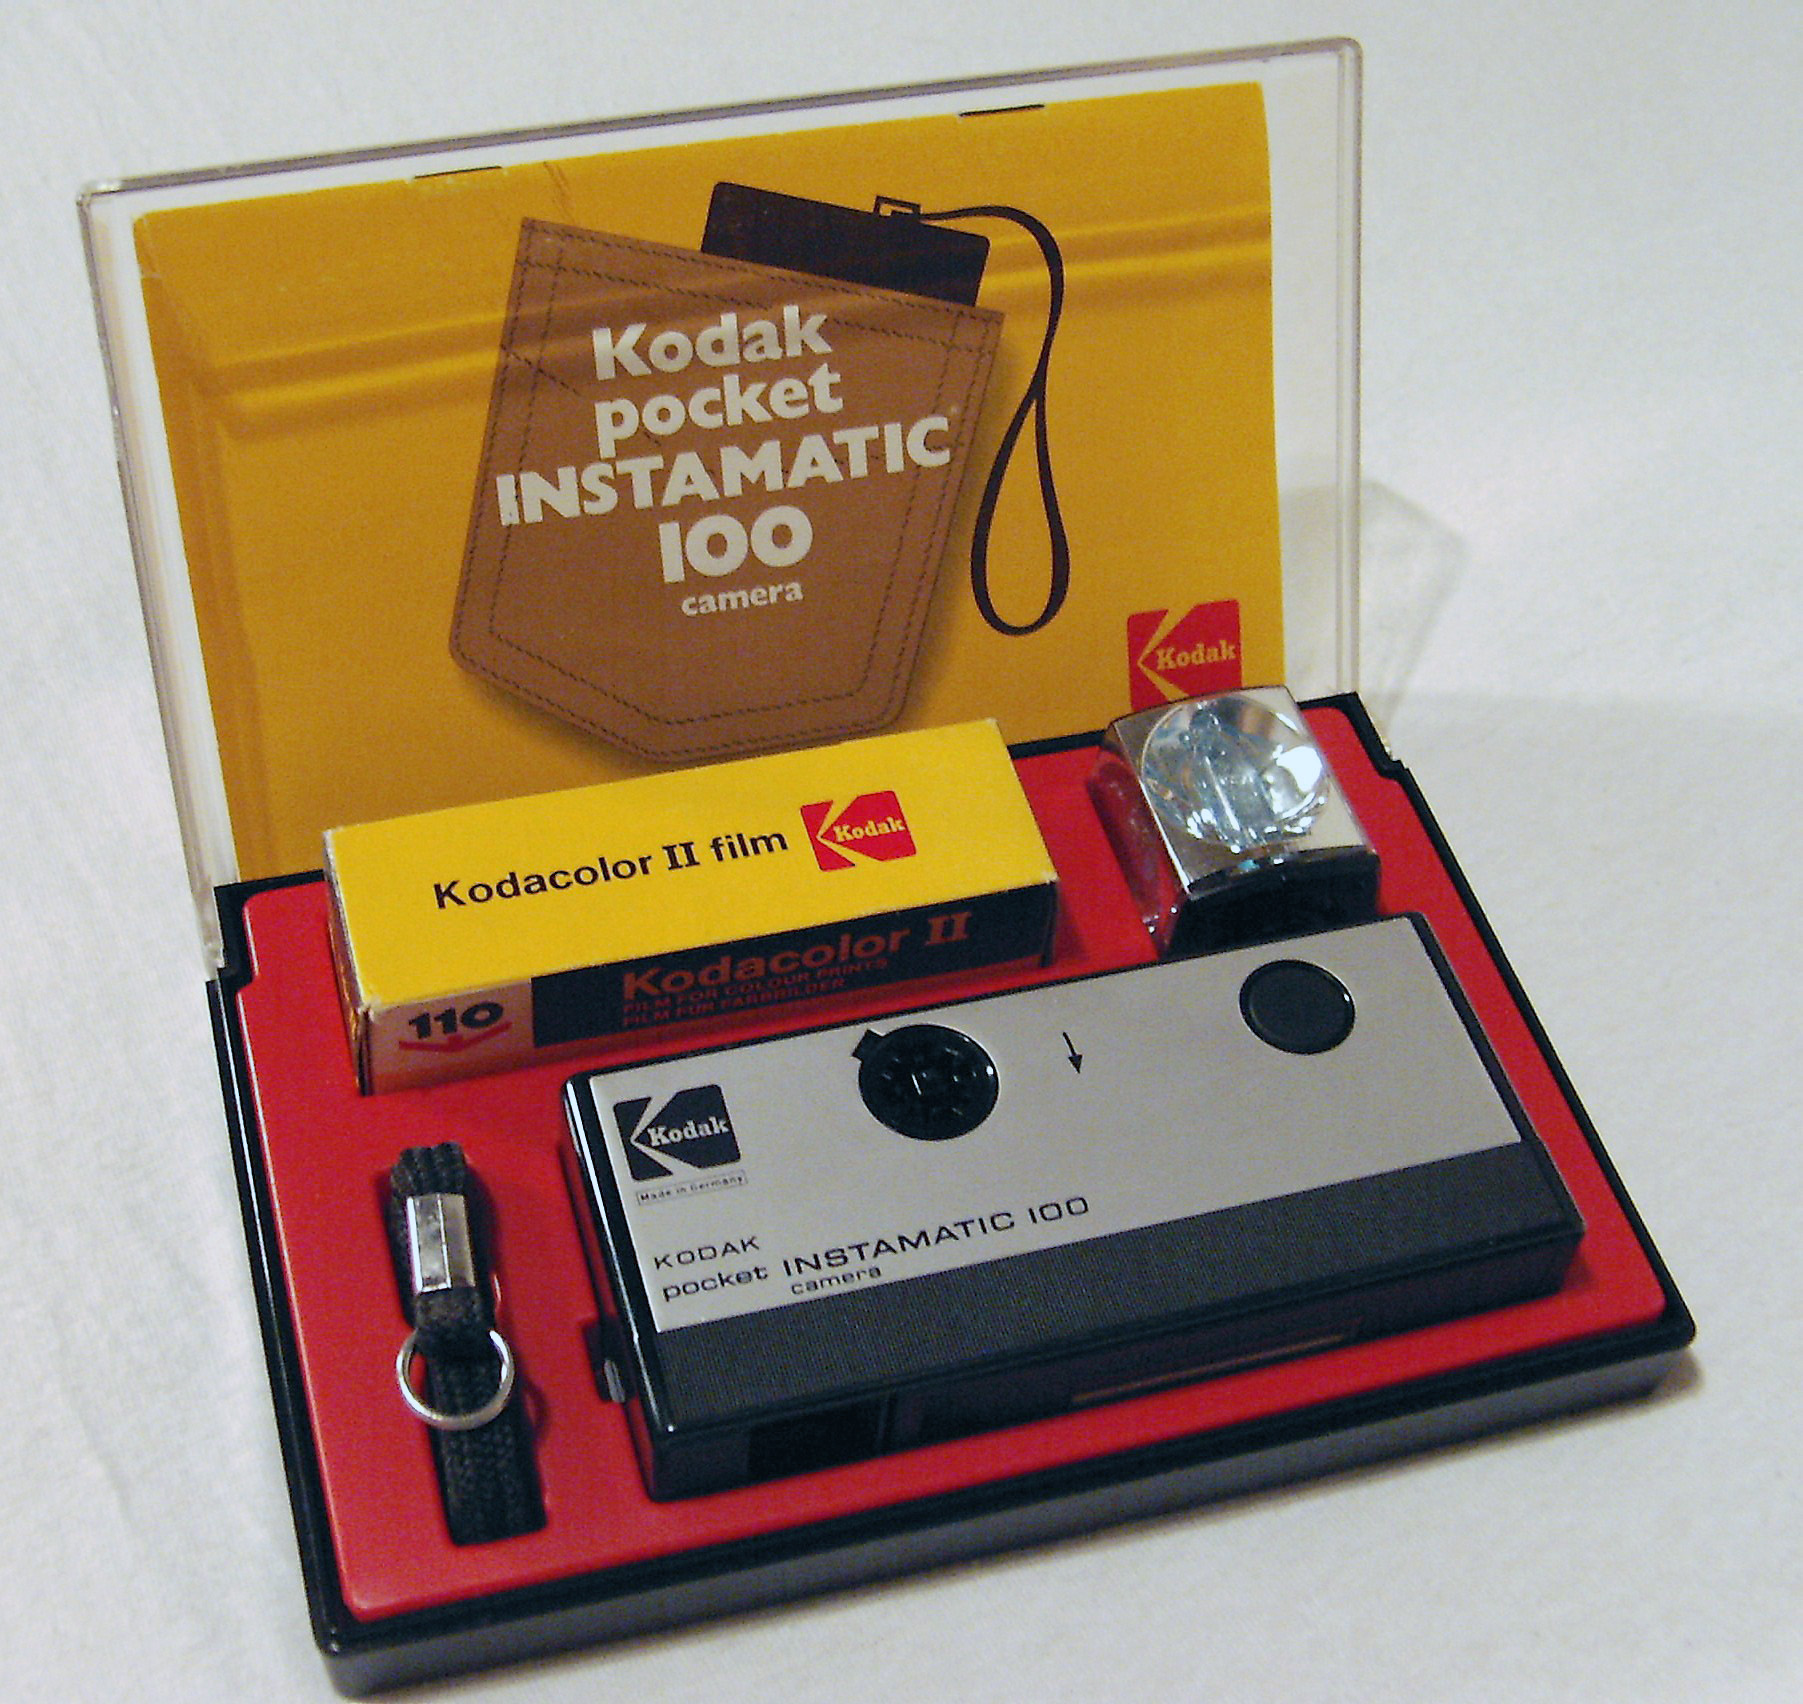 Photo of Kodak Pocket Instamatic 100, First camera for the 'Pocket Instamatic'-Film. Presented in this box on the 'Photokina' fair in Germany, 1972